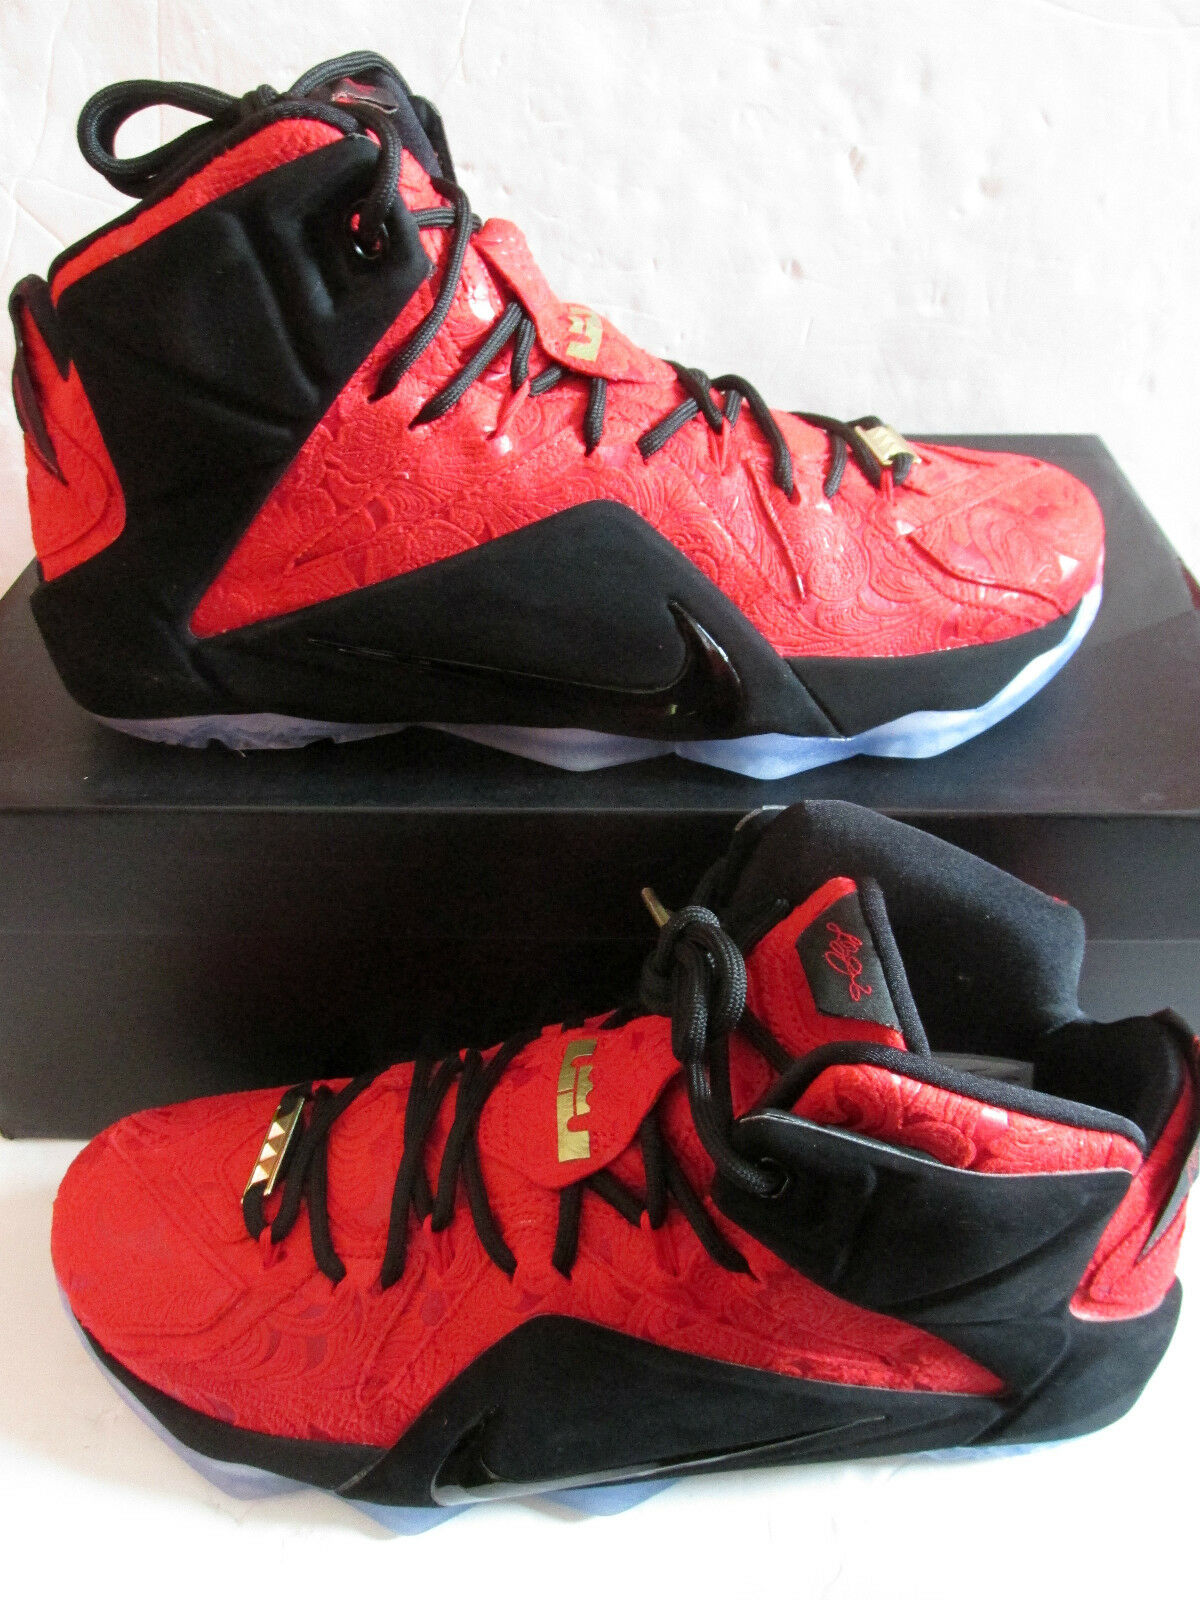 nike lebron XII EXT mens hi top trainers 748861 600 sneakers shoes The latest discount shoes for men and women